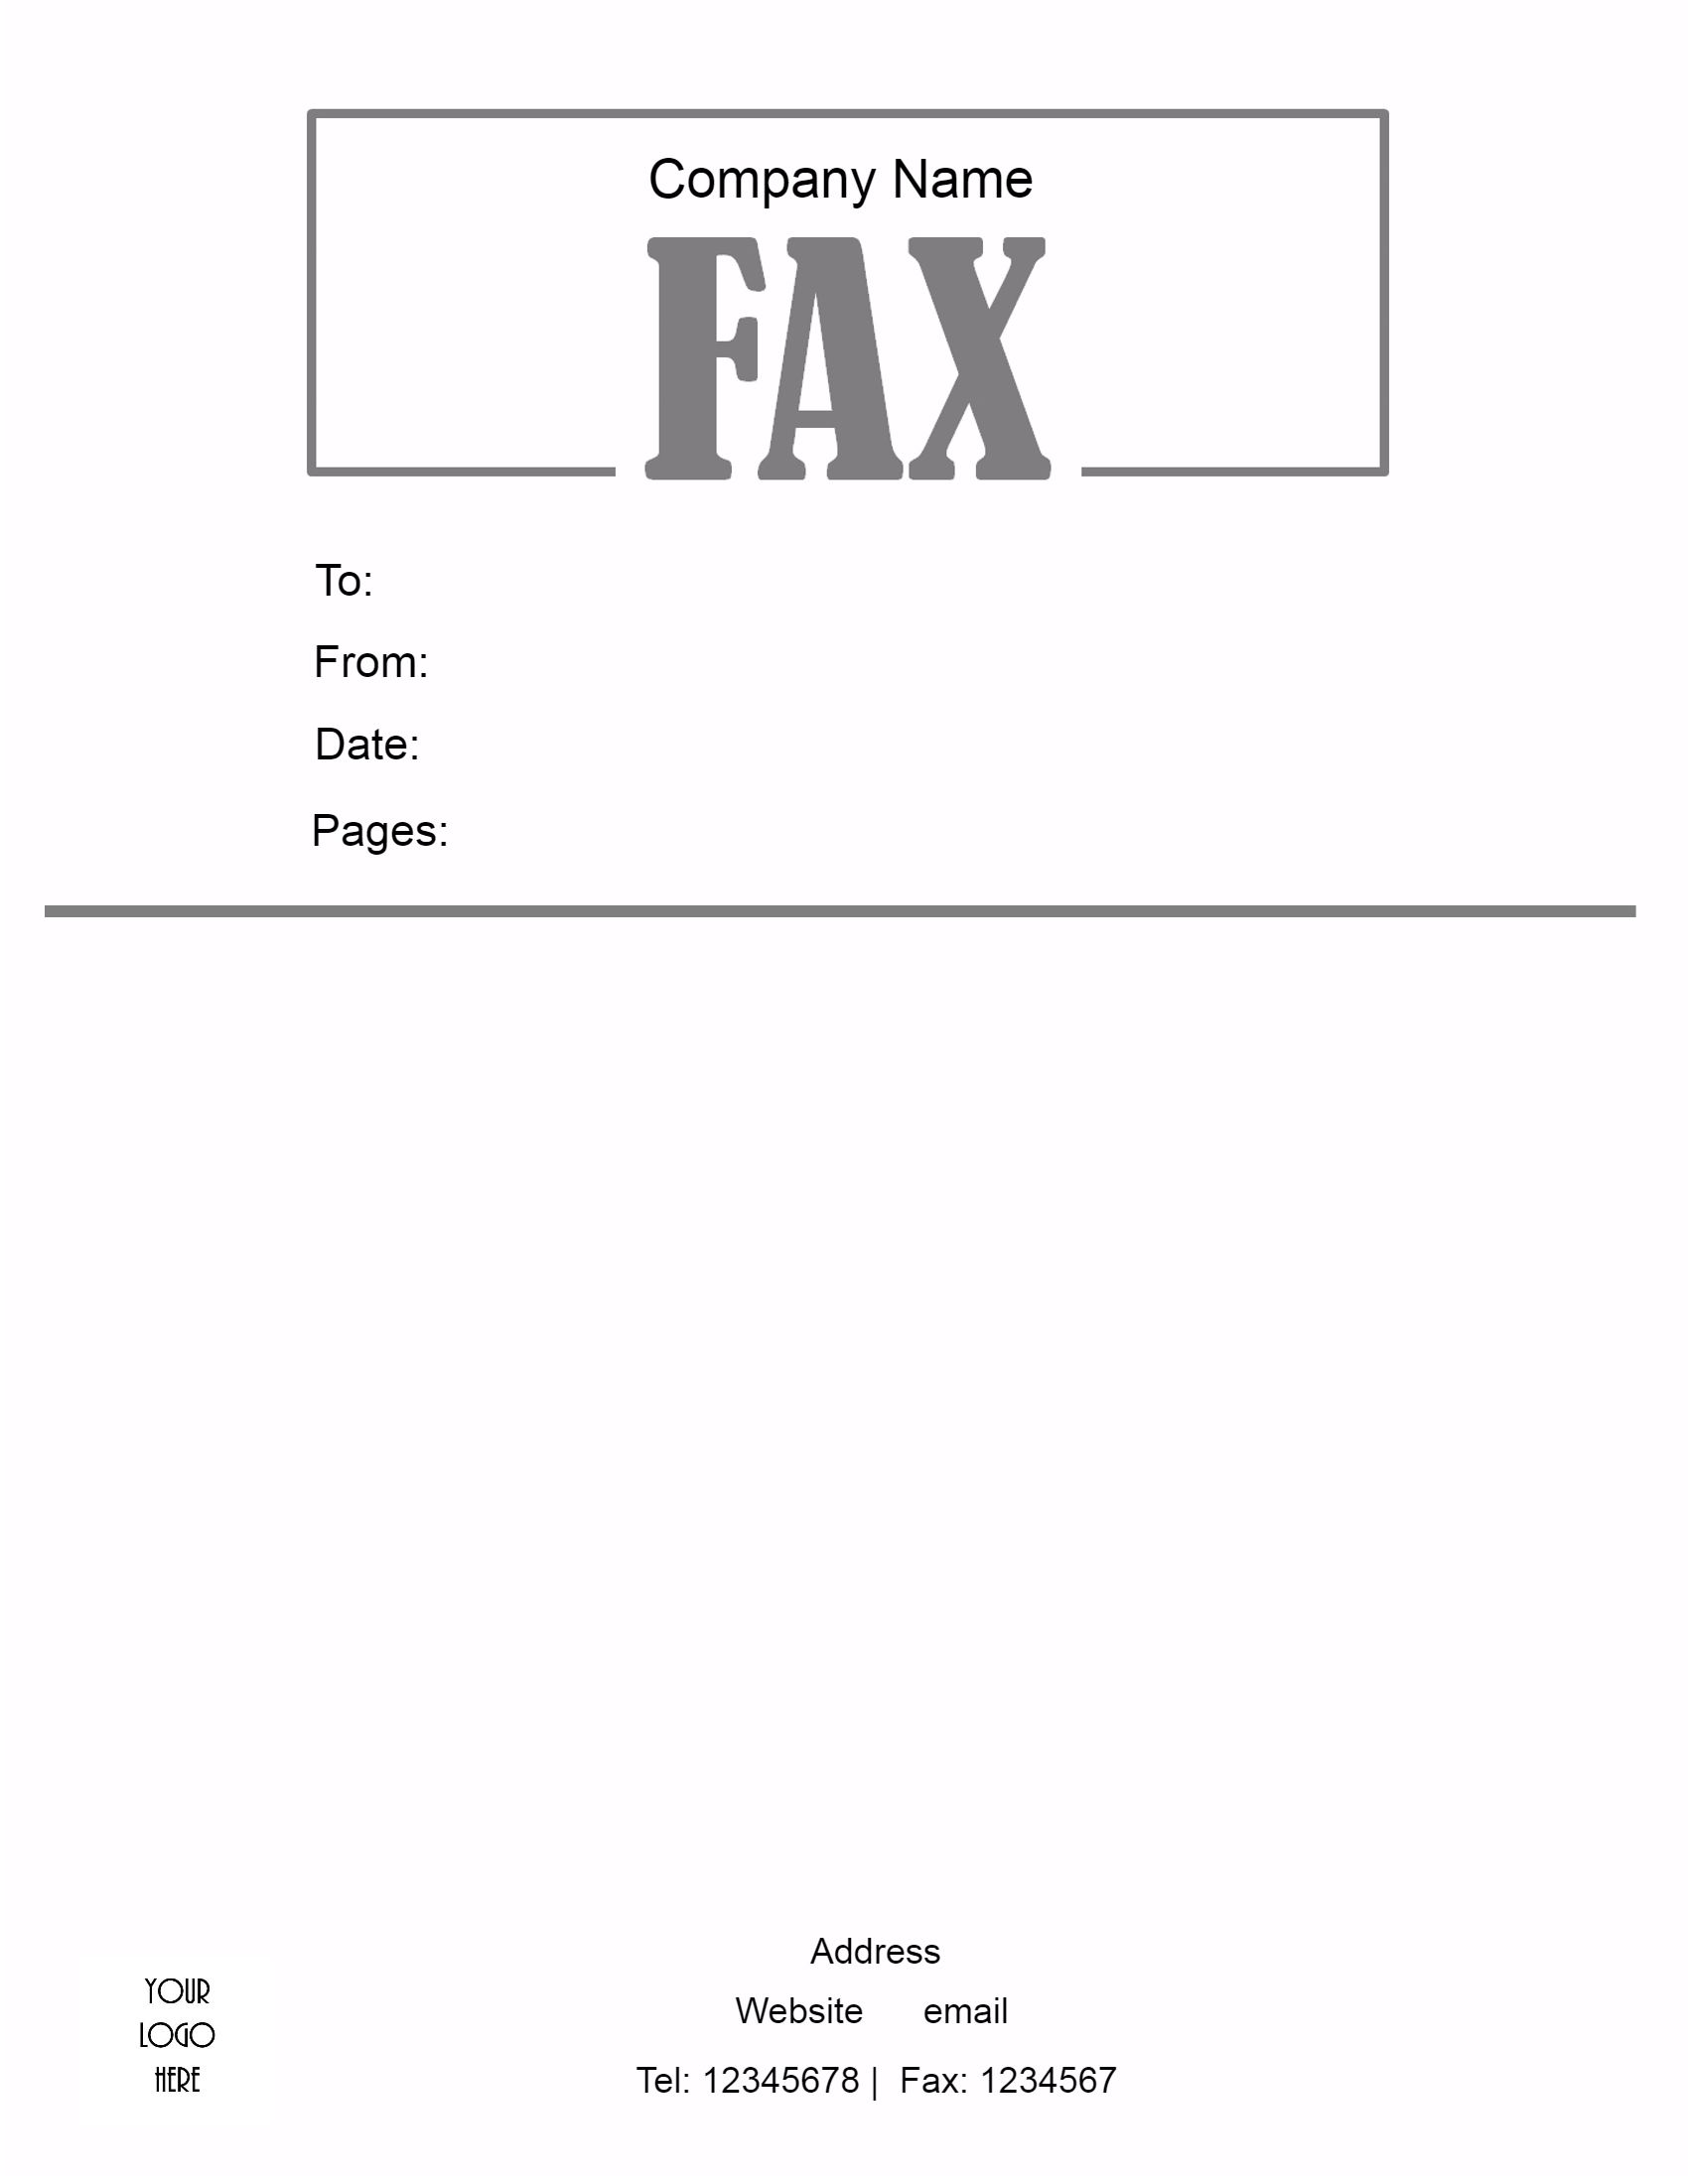 Faxing resume